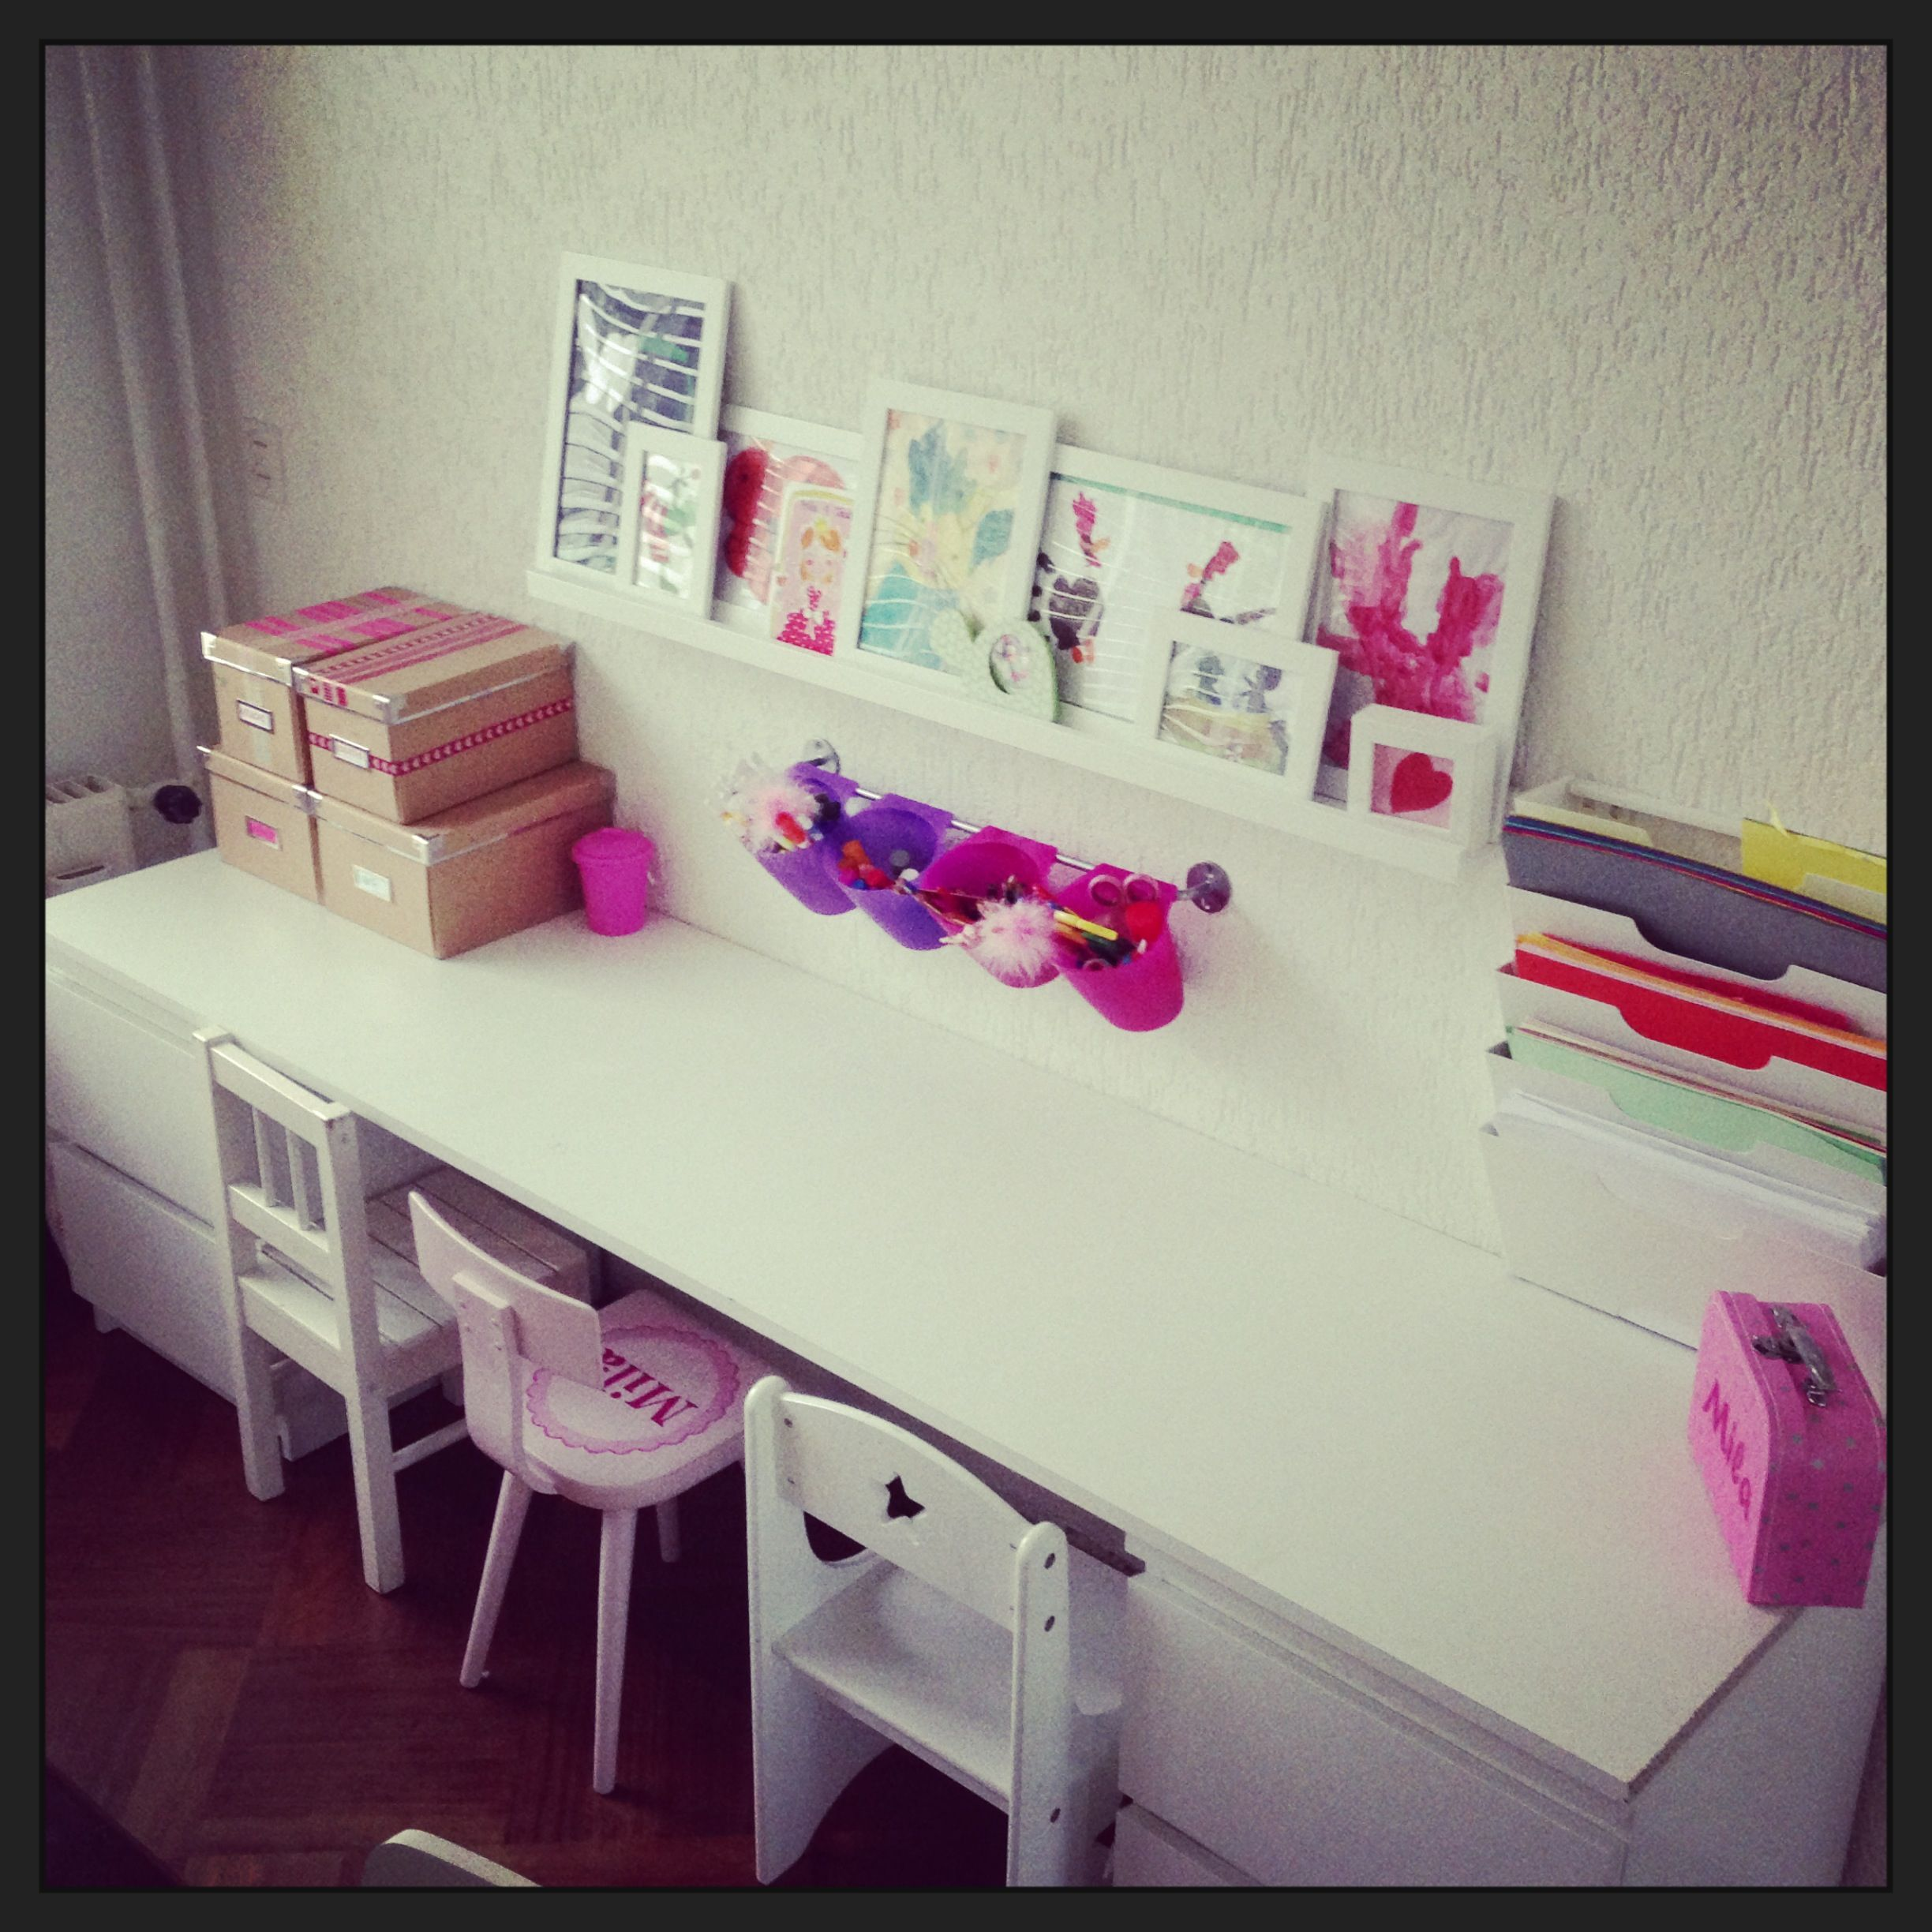 Pinterest Schlafzimmer Mädchen Kids Art Corner Knutselhoek Tekentafel Playroom Home